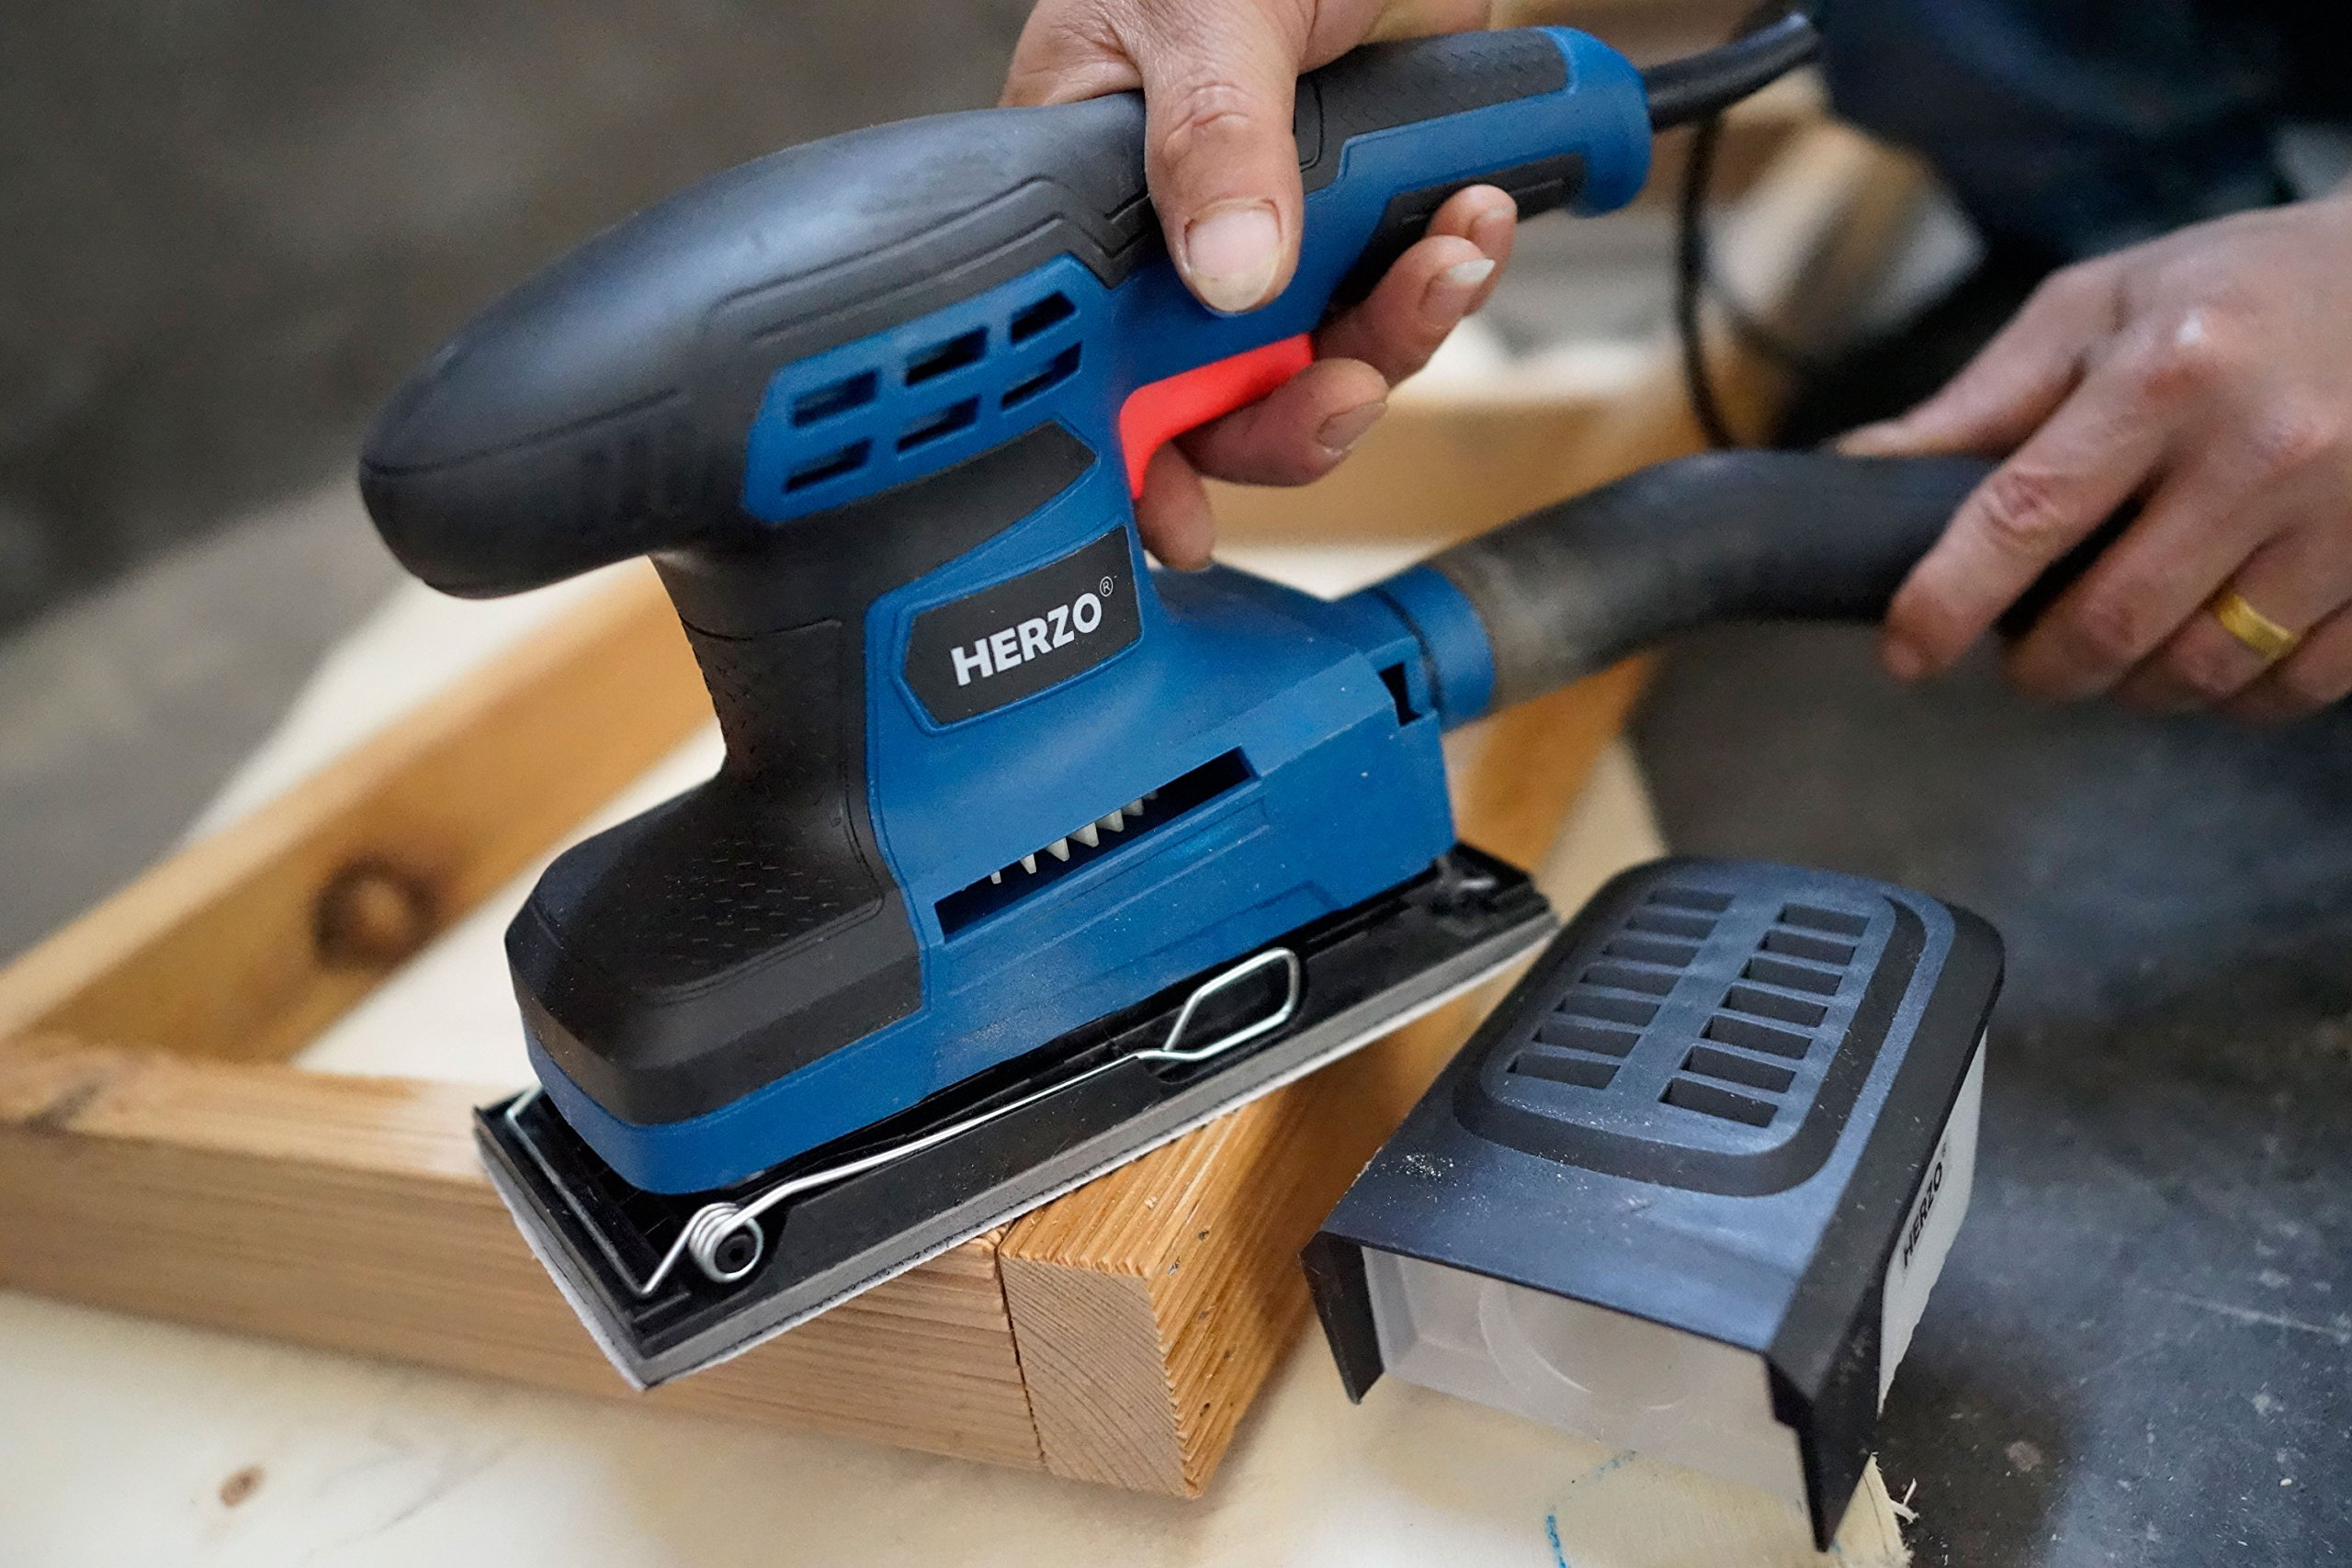 Sheet Sander HERZO 1/3 Finishing Sander with Self-Dust Collection Box, Hook-and-Loop Base Pad and 10 Pcs Sandpaper 2.2A by HERZO (Image #5)